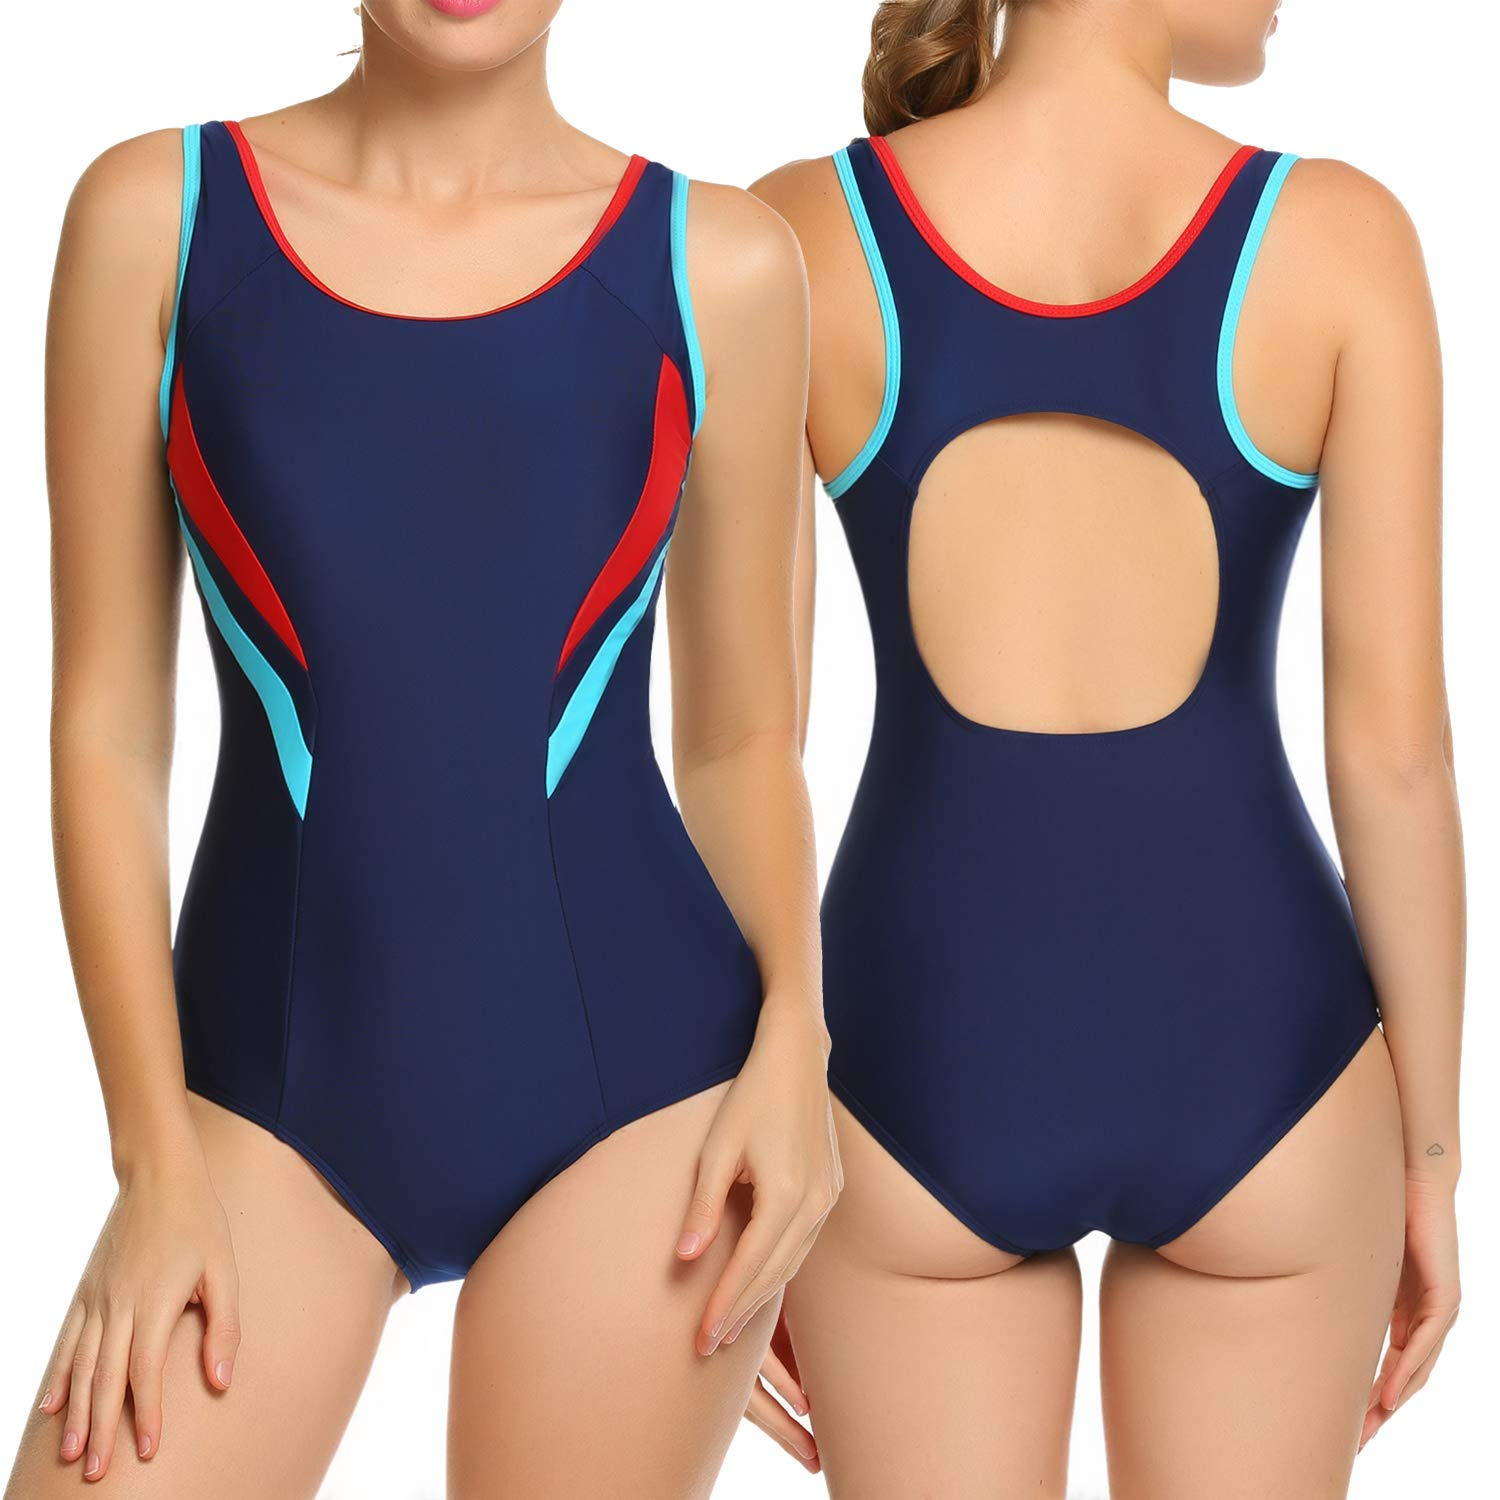 b632fc1f949a3 Get Quotations · ADOME Athletic One Piece Swimsuit Womens Backless Bathing  Suit S-XXL